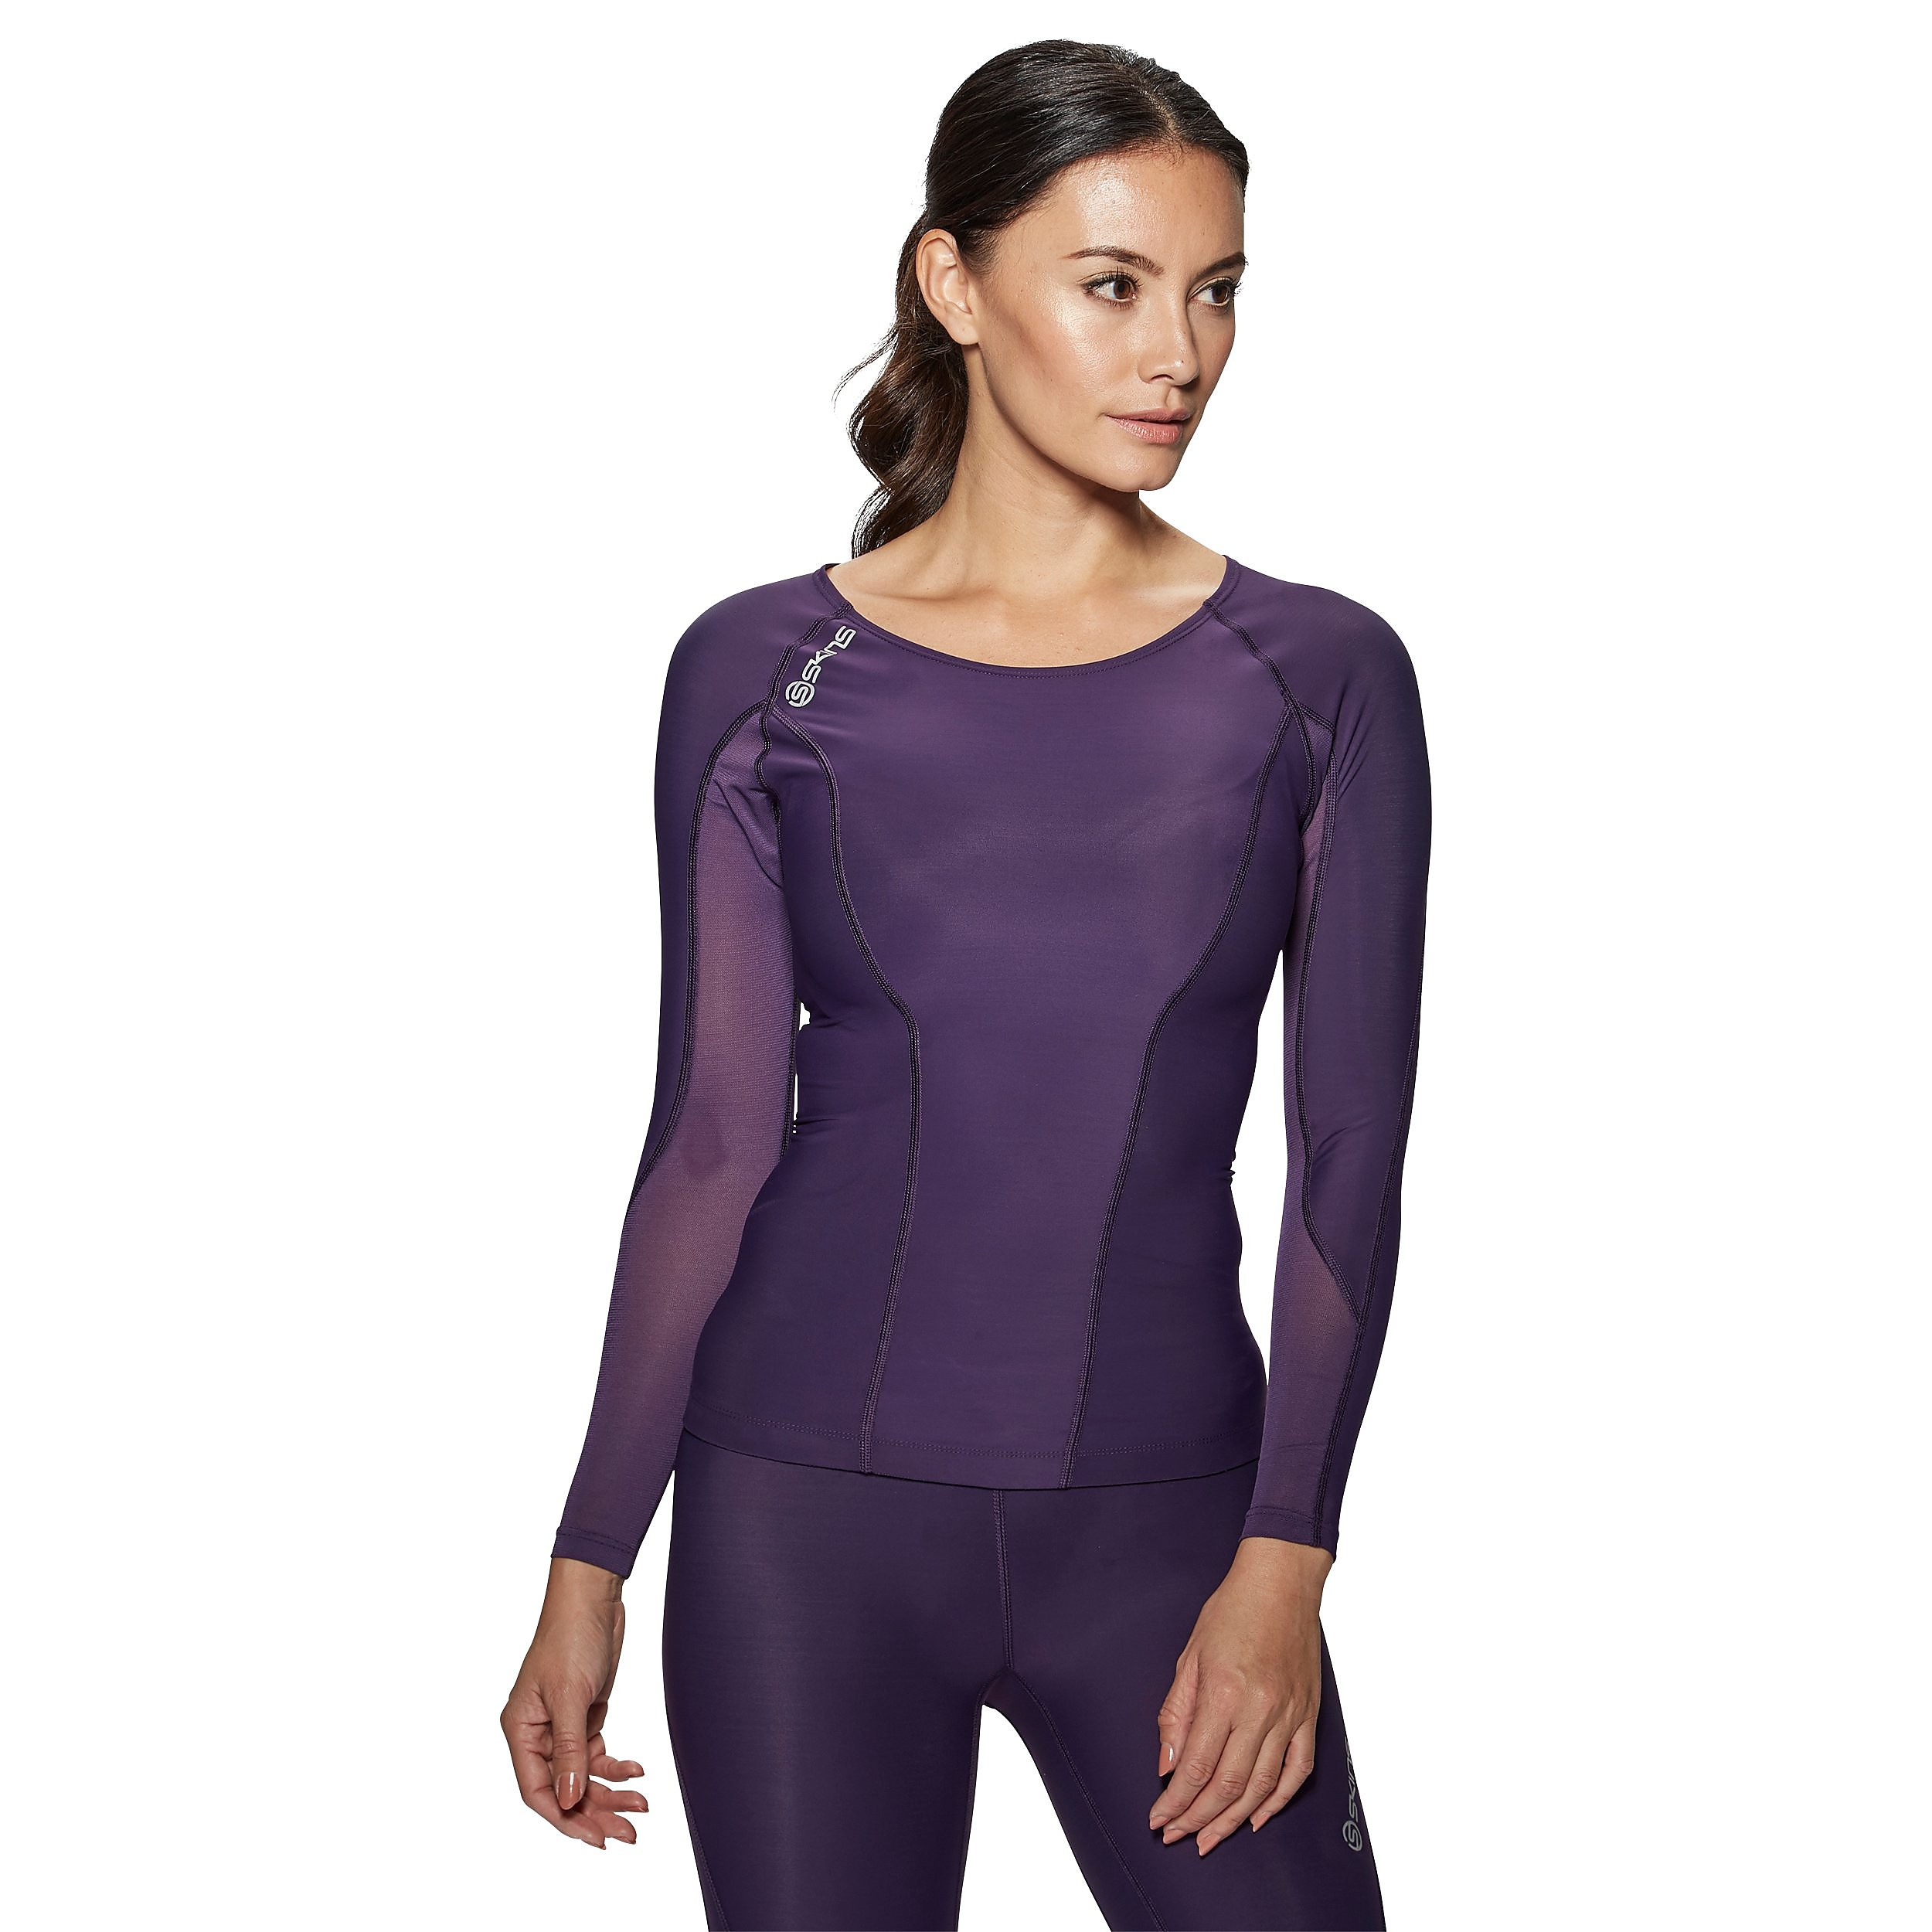 Skins  DNAmic Long Sleeve Women's Top